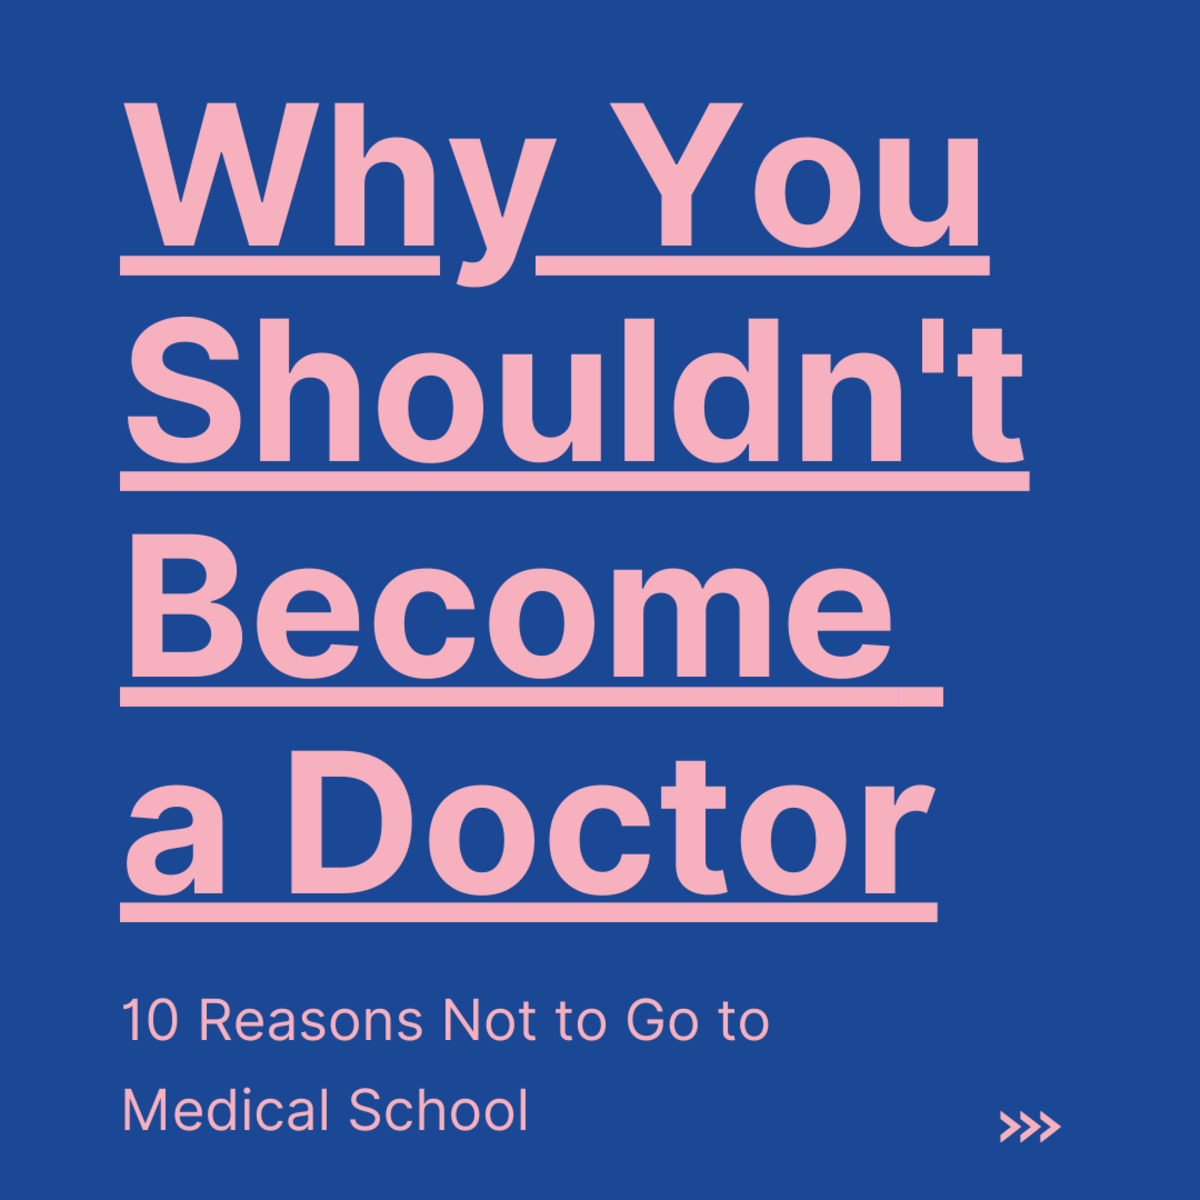 Thinking of applying to med school? Read this first.